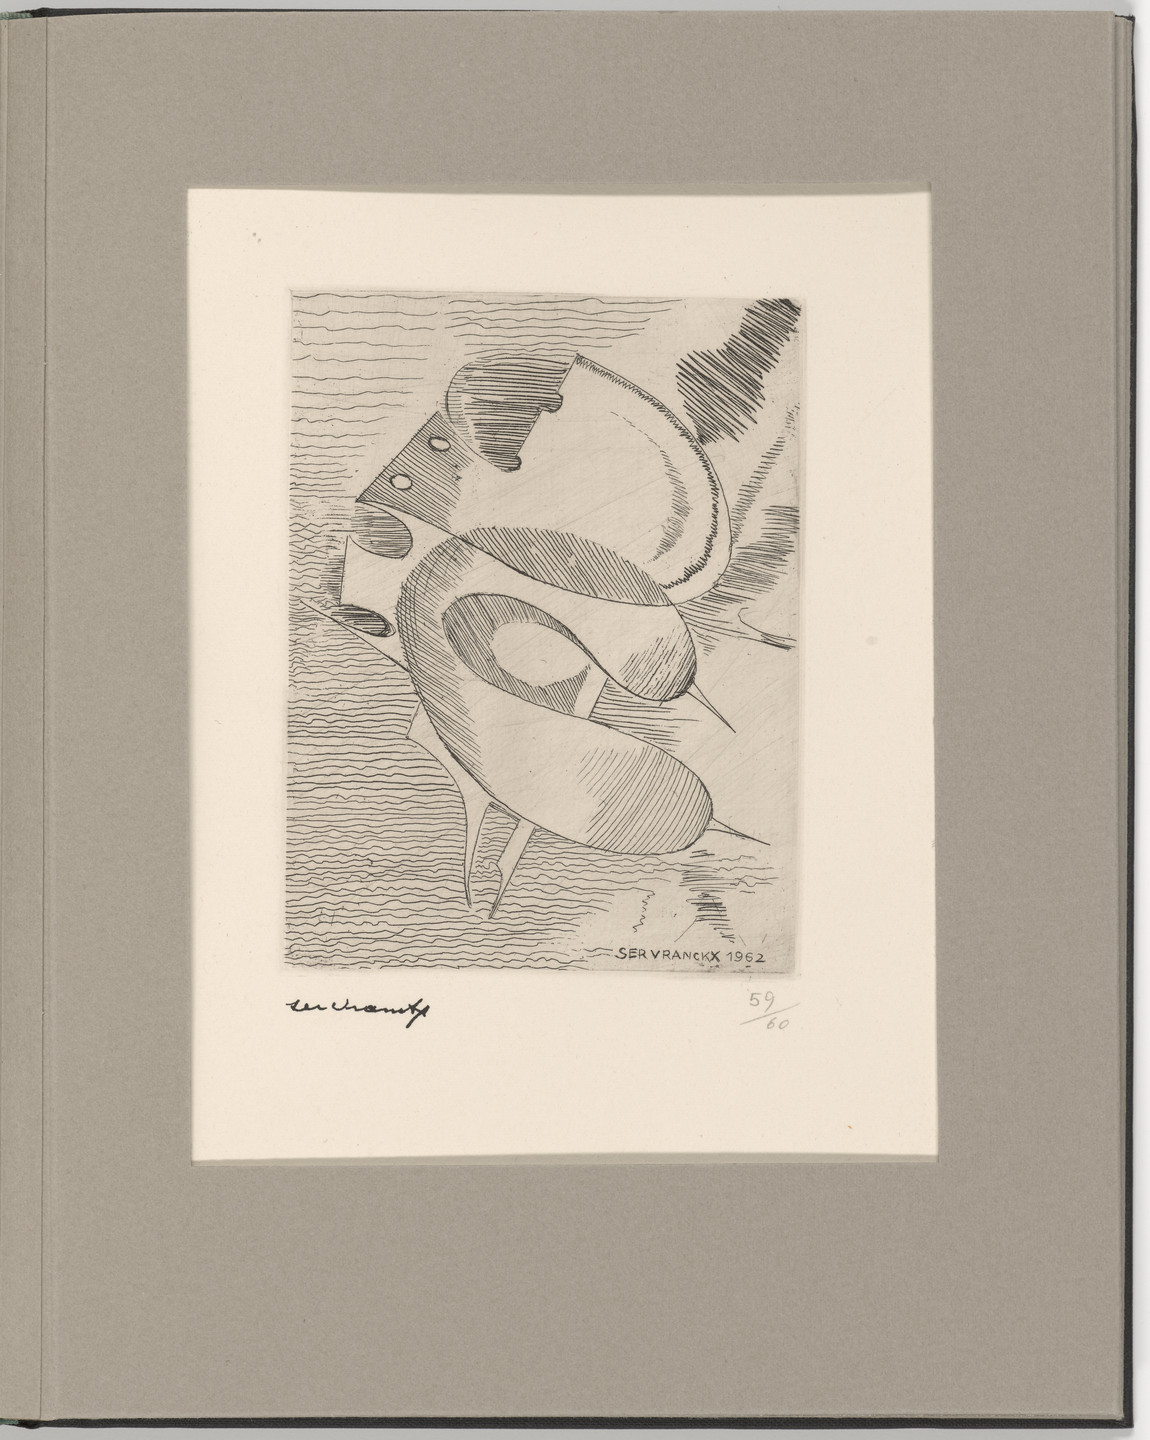 Victor Servranckx. Plate 18 from Futurists, Abstractionists, Dadaists: the Forerunners of the Avant-Garde, vol. I. 1962